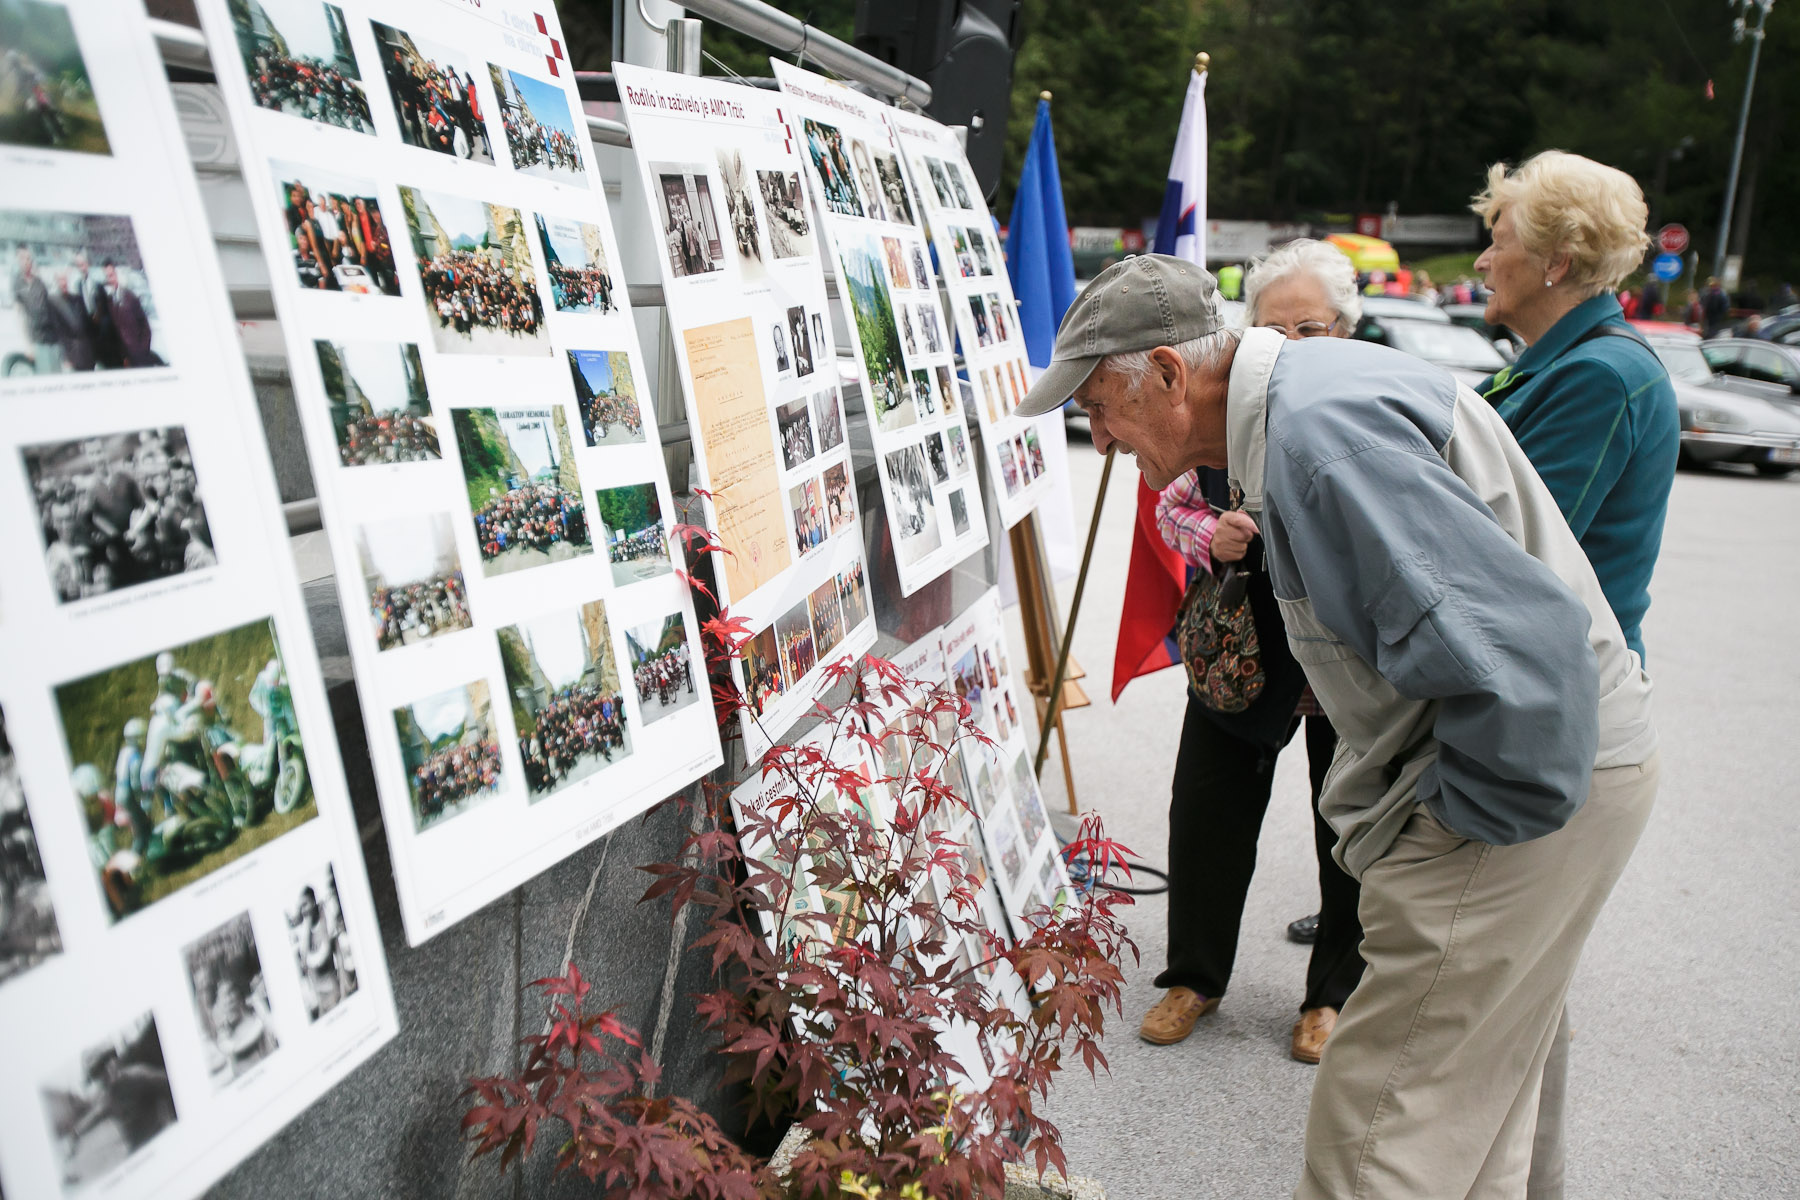 People admire the exhibition of photographs showing the history of the oldtimers\' race at the 19th Hrast Memorial, the international oldtimers\' mountain race in Ljubelj, Slovenia, Sep. 13, 2015.